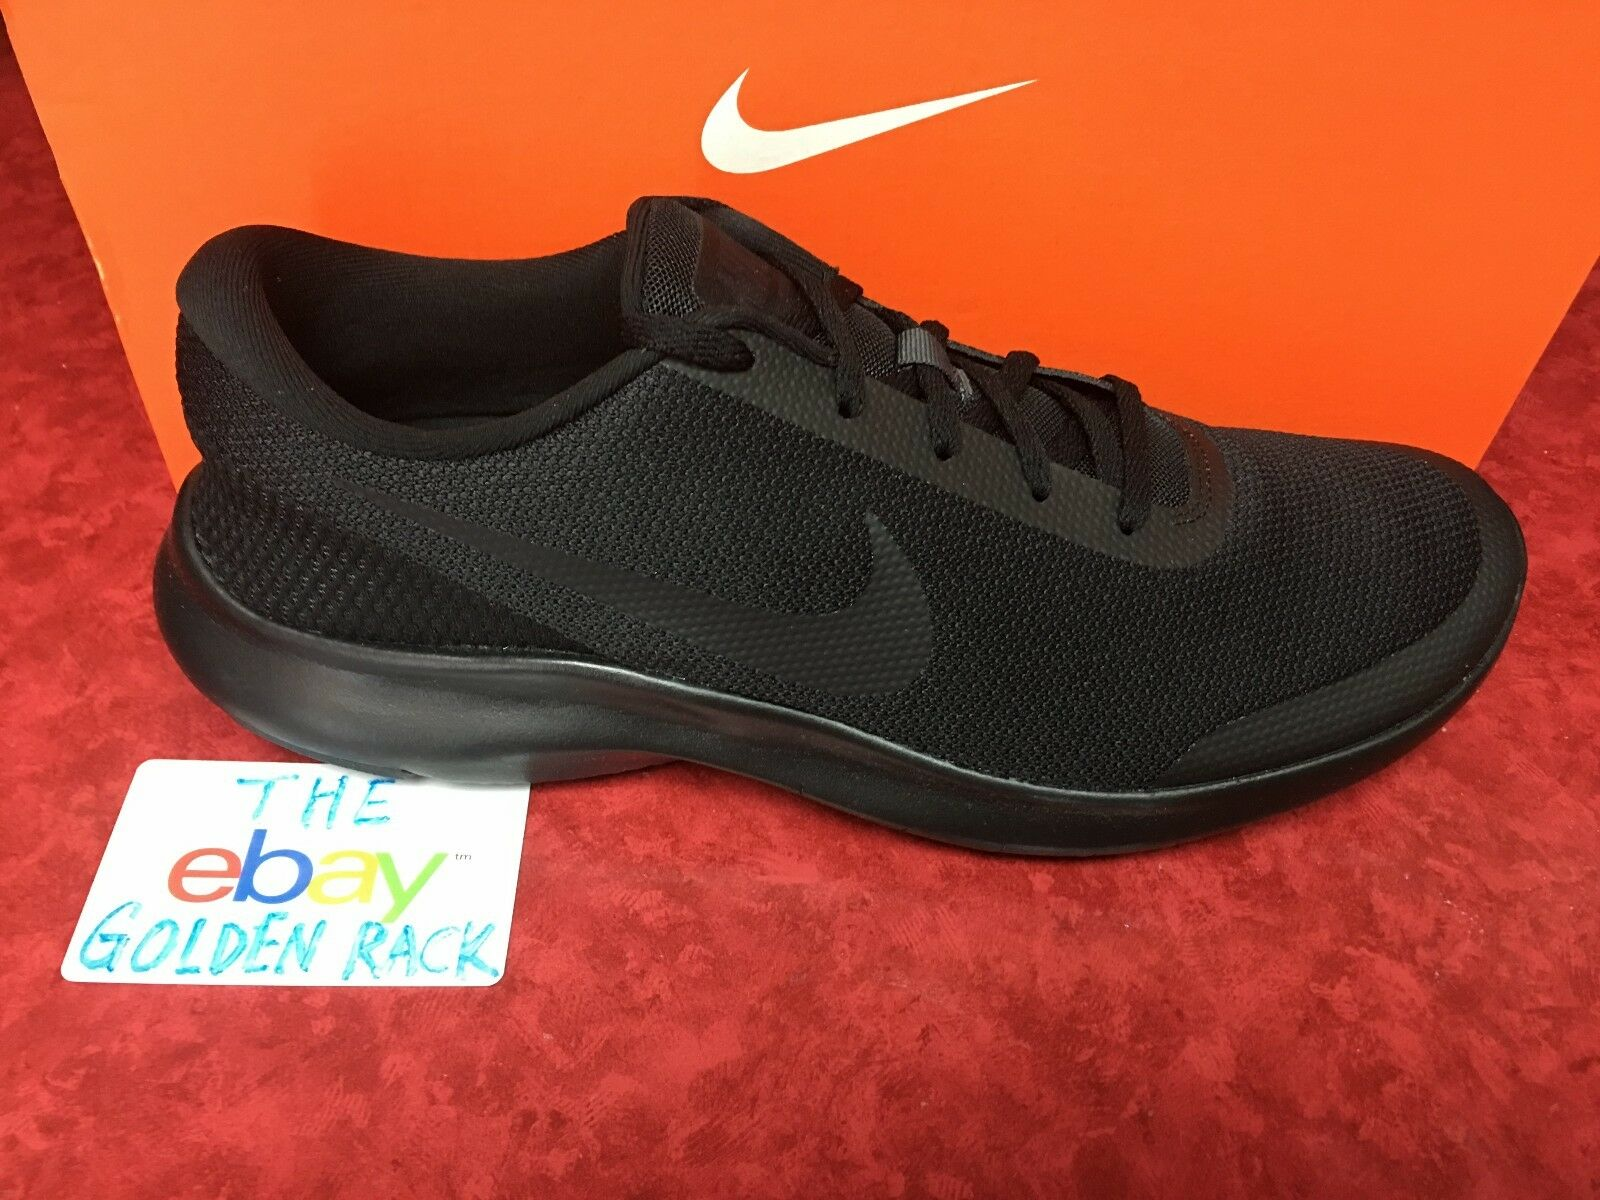 Nike Men's Flex Experience RN 7 Mens Running Shoes 908985 002 Black/Anthracite